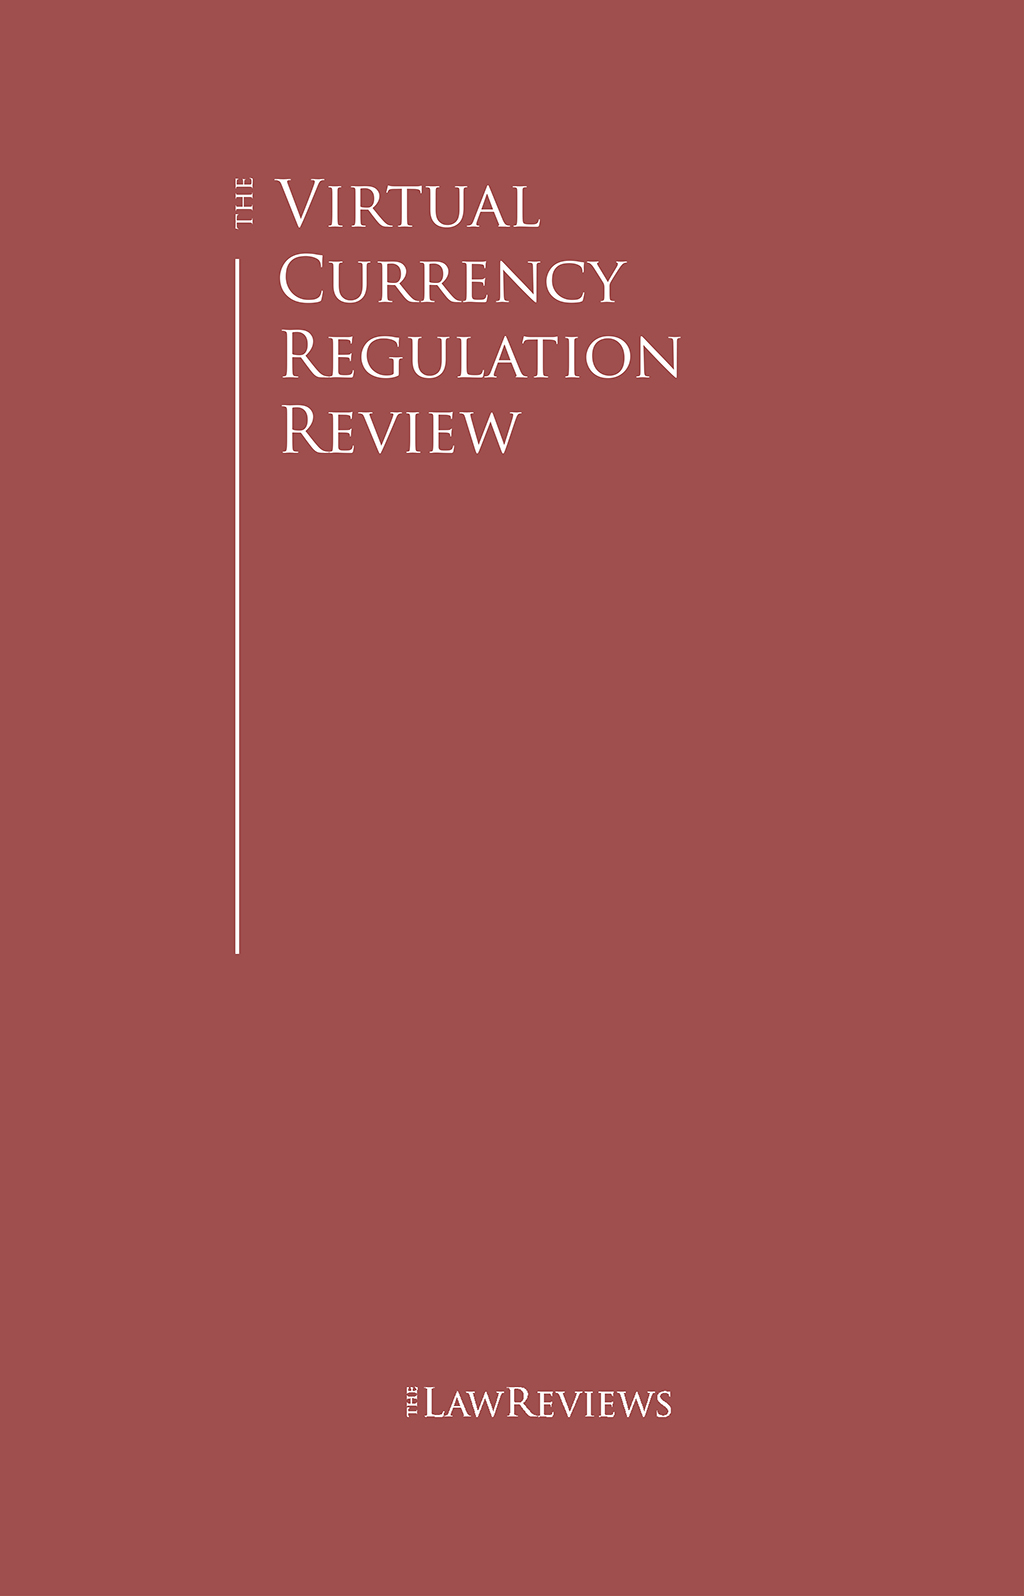 The Virtual Currency Regulation Review